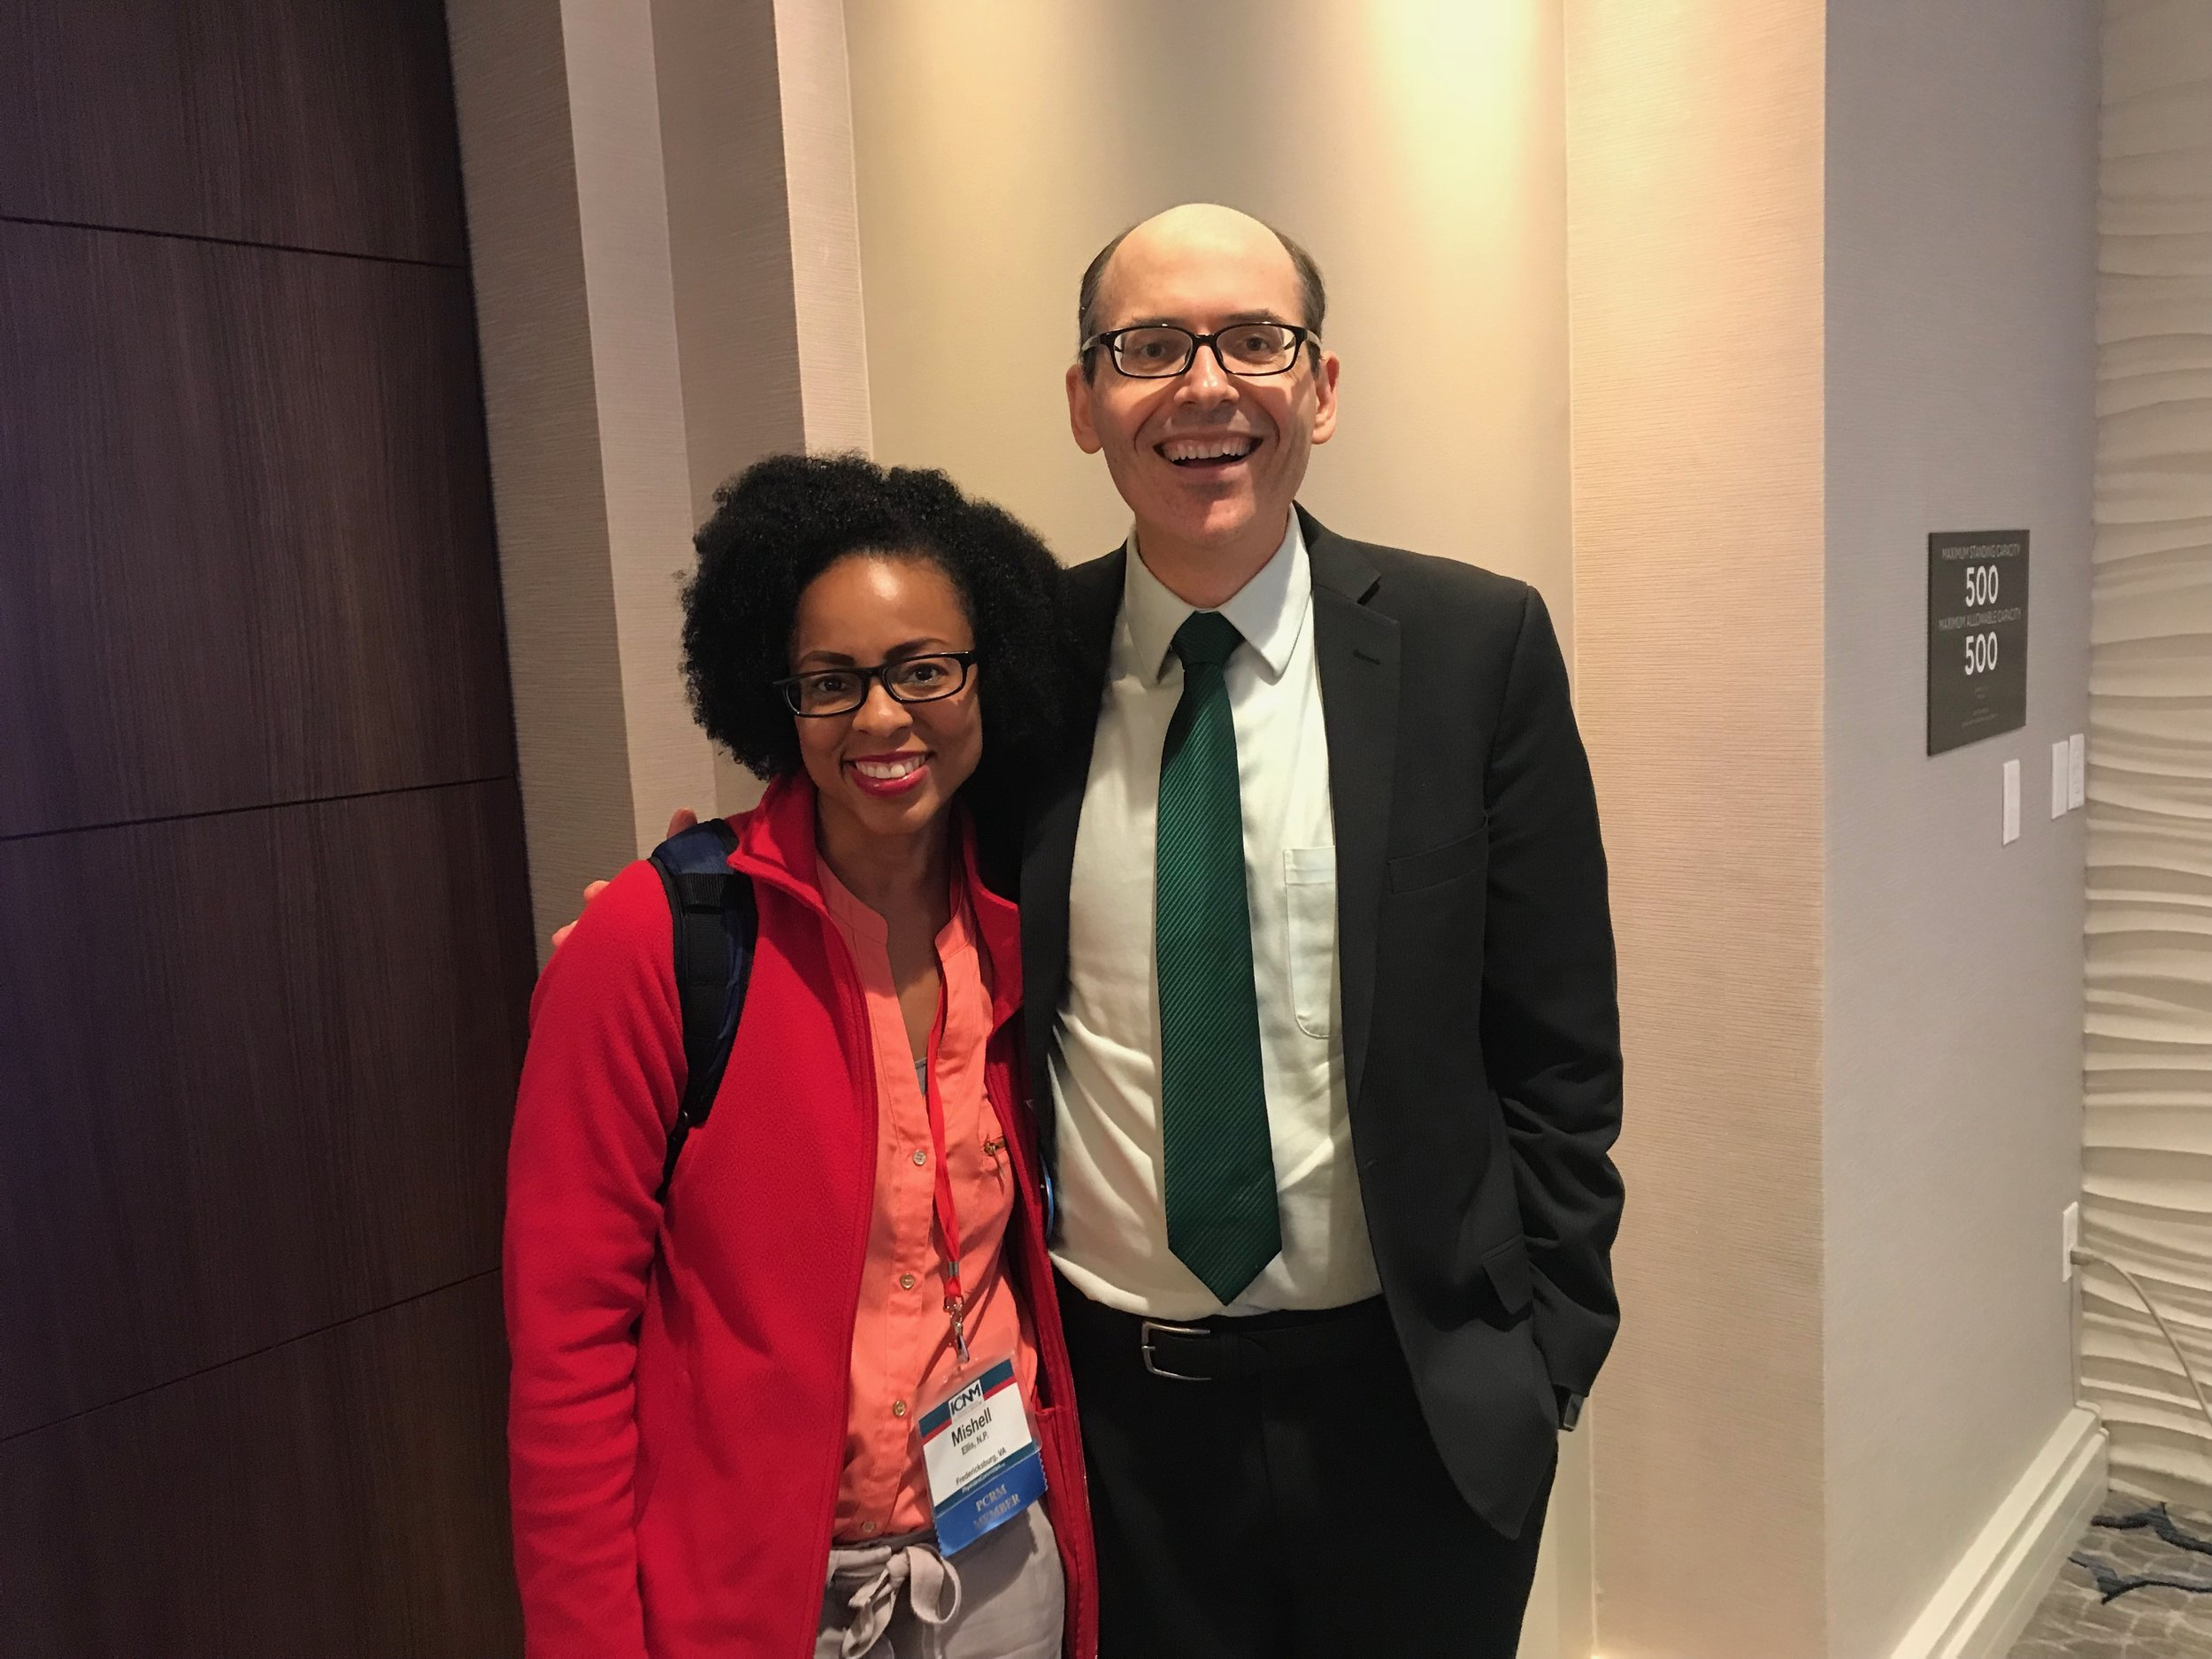 Dr. Greger and I at the 2018 International Conference on Nutrition in Medicine in Washington, D.C. I could not wait to tell him that his work was the reason for my 45 pound weight loss and how adopting a plant based diet changed my life for the better.